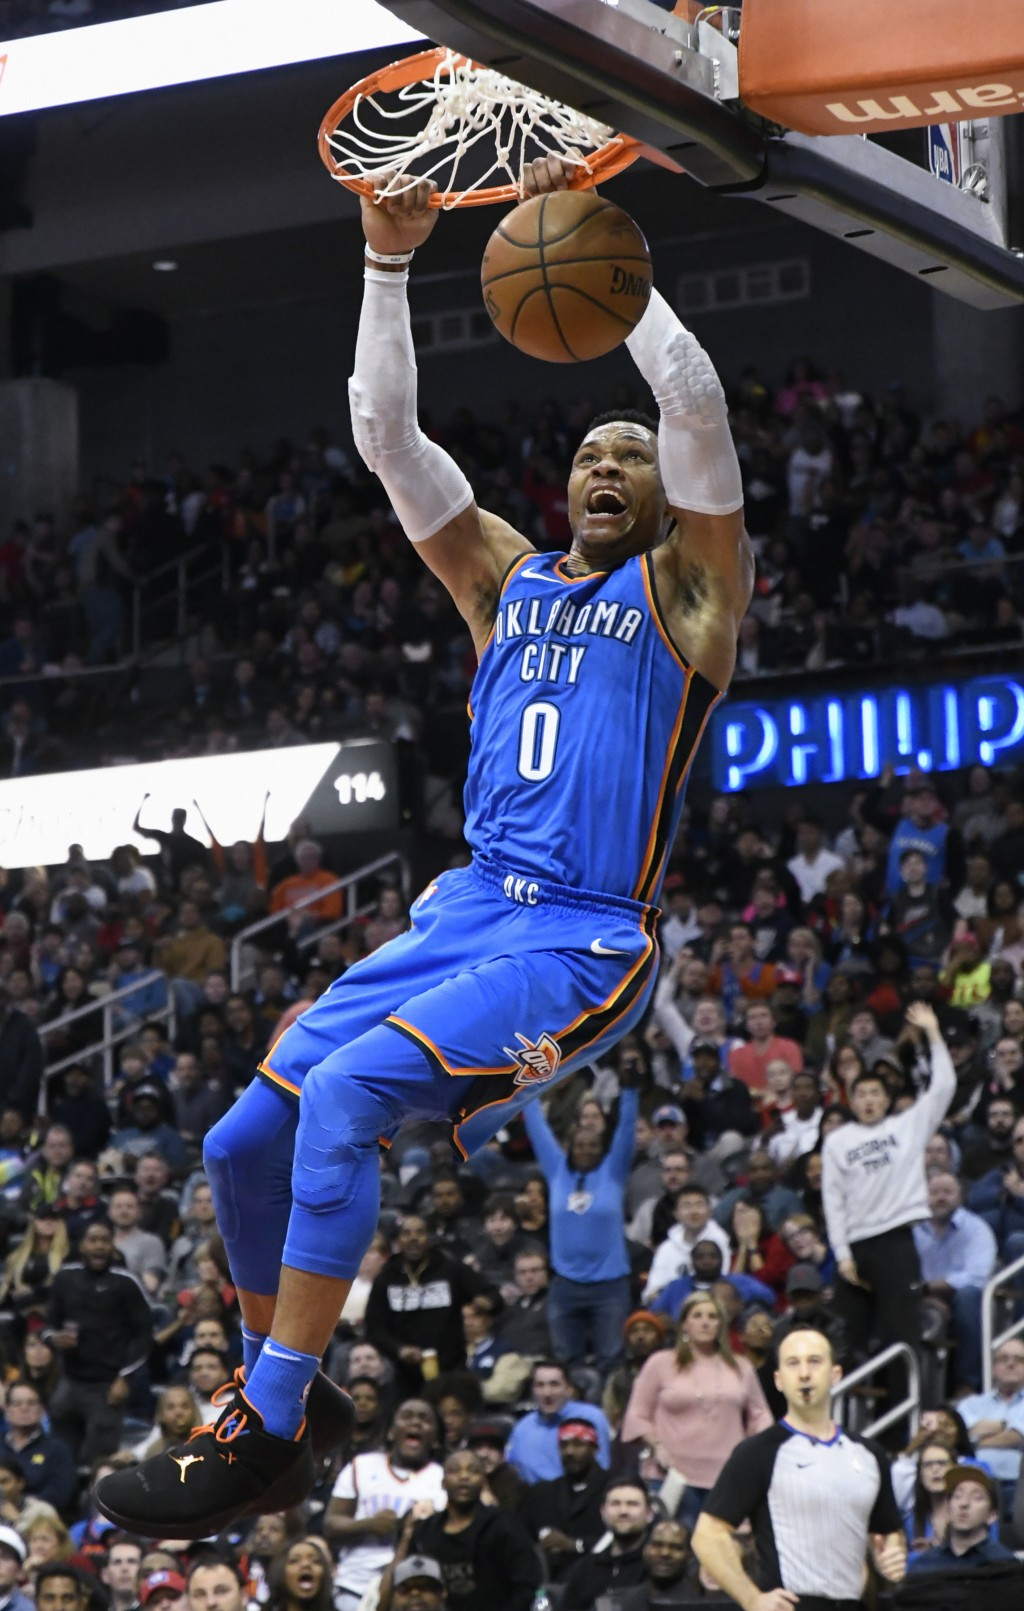 Oklahoma City Thunder guard Russell Westbrook dunks during the second half of an NBA basketball game against the Atlanta Hawks, Tuesday, March 13, 201